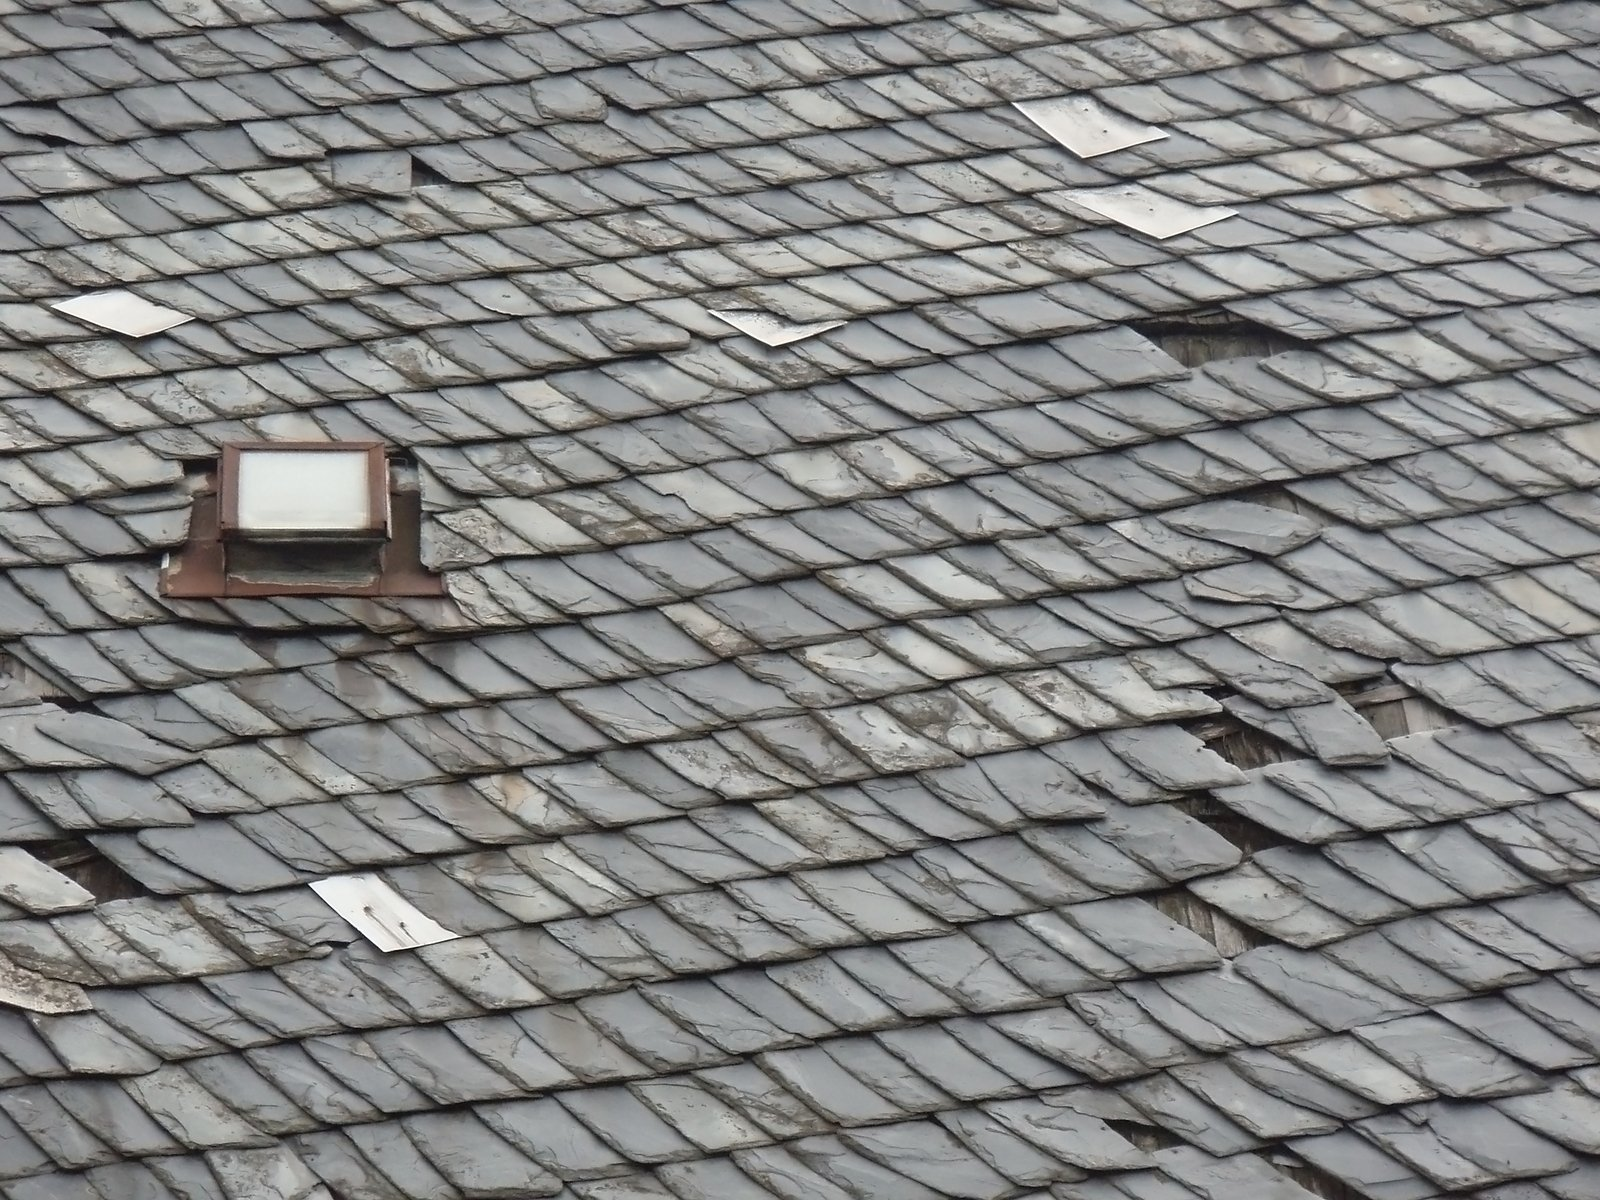 Free Roof Tiles Stock Photo Freeimages Com